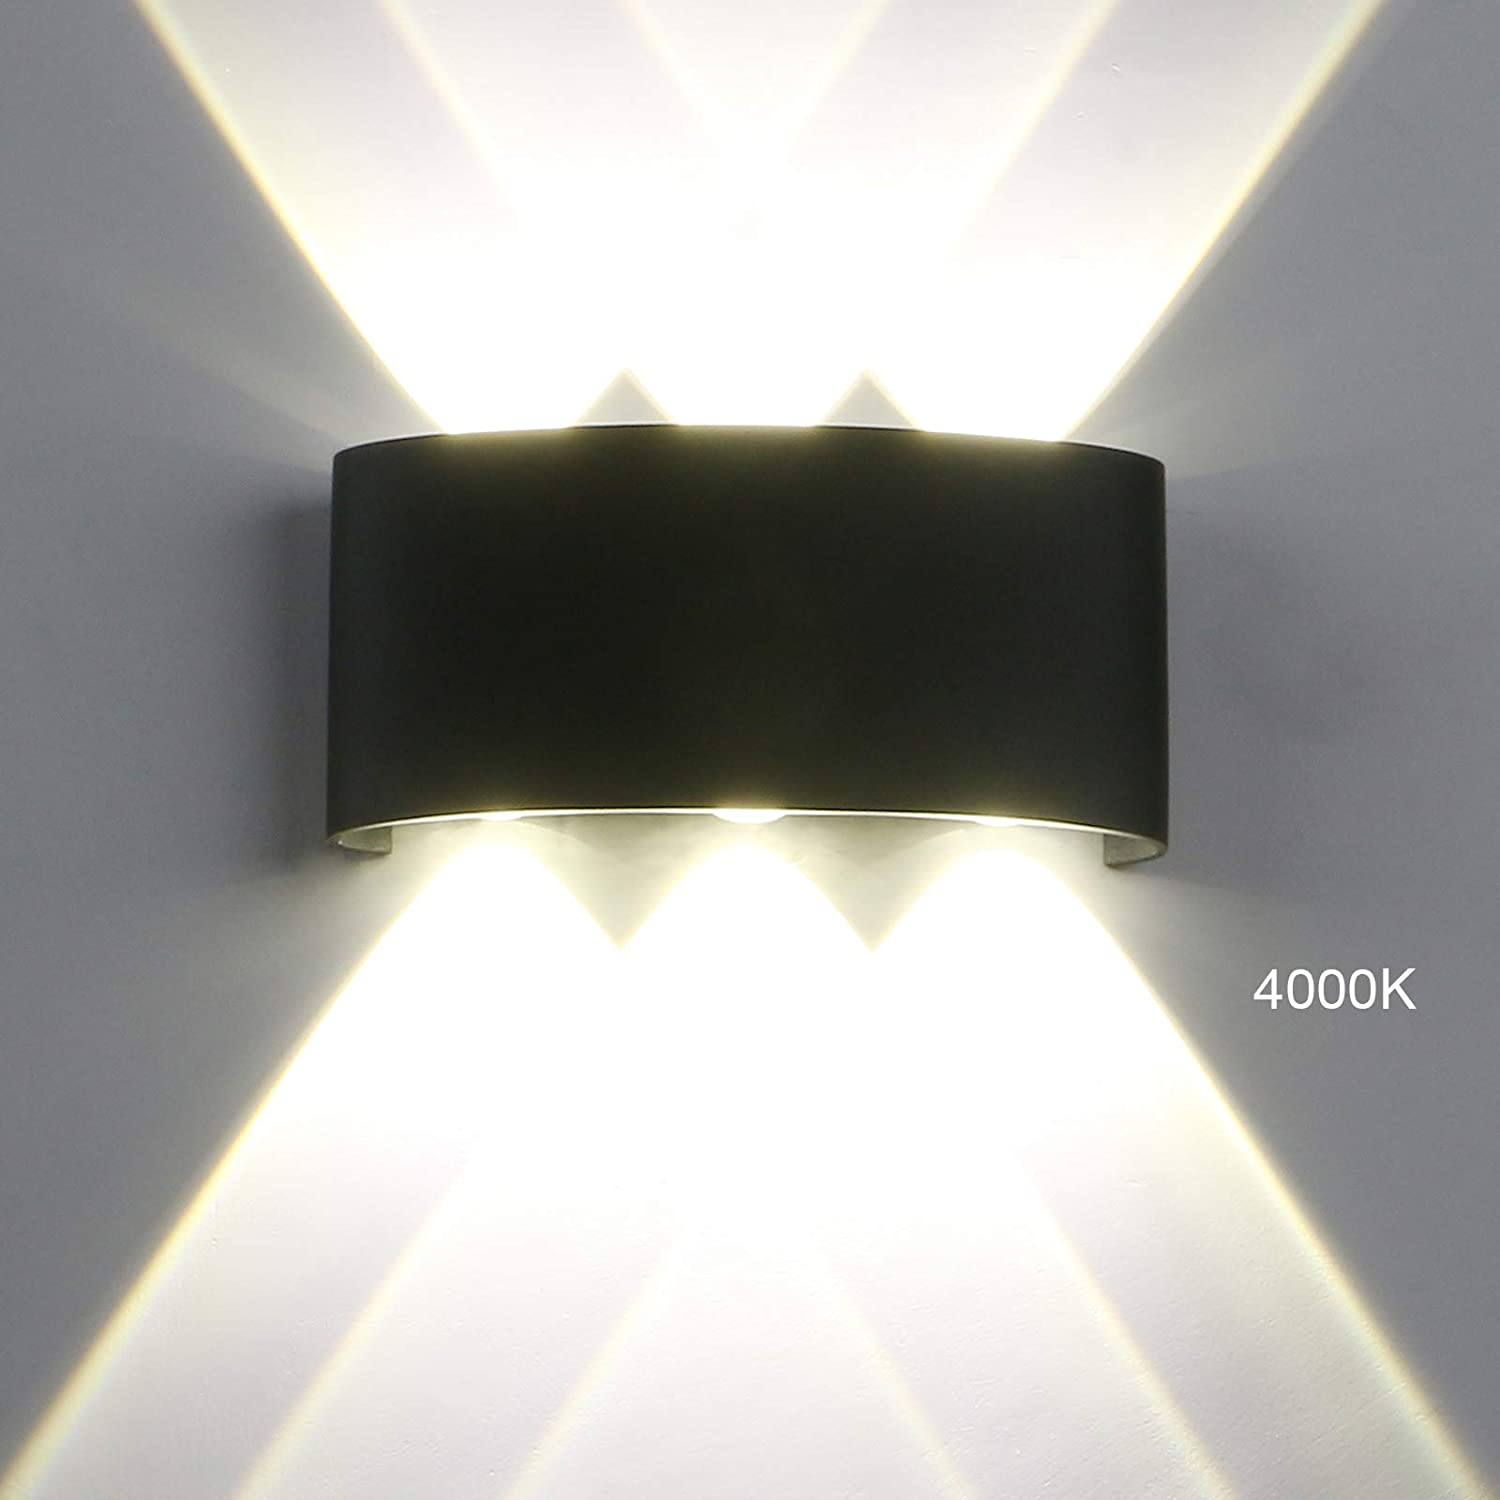 Pathson Modern Outdoor Wall Light, 6 LEDs Hallway Porch Wall Sconce, 3.2 Inches Base Up Down Wall Lamp Indoor Matte Black Wall Mount Light Fixture 4000K White Light(Style 2)